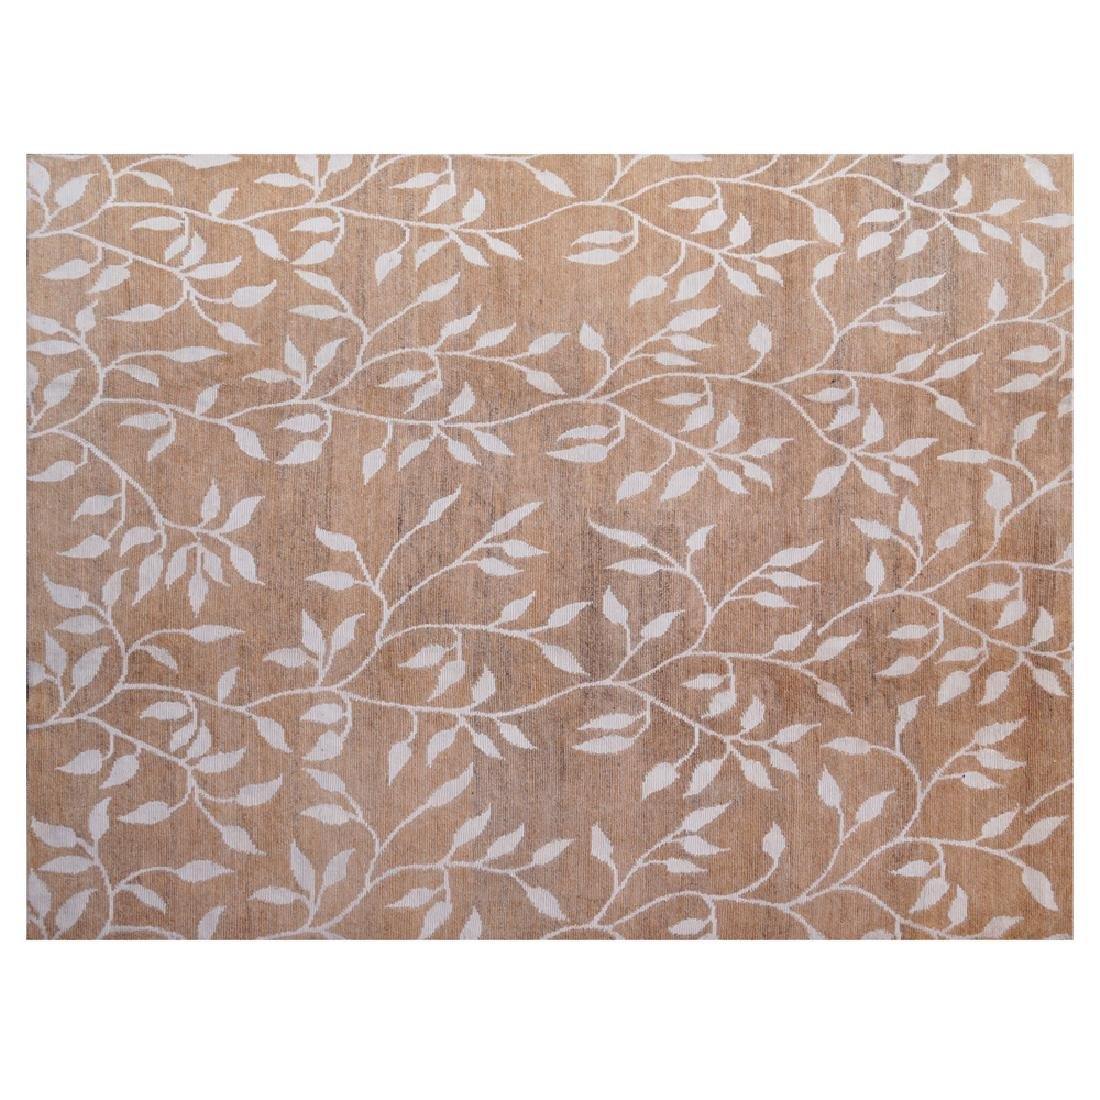 Hand knotted decorative wool and silk Carpet Nepal 20th